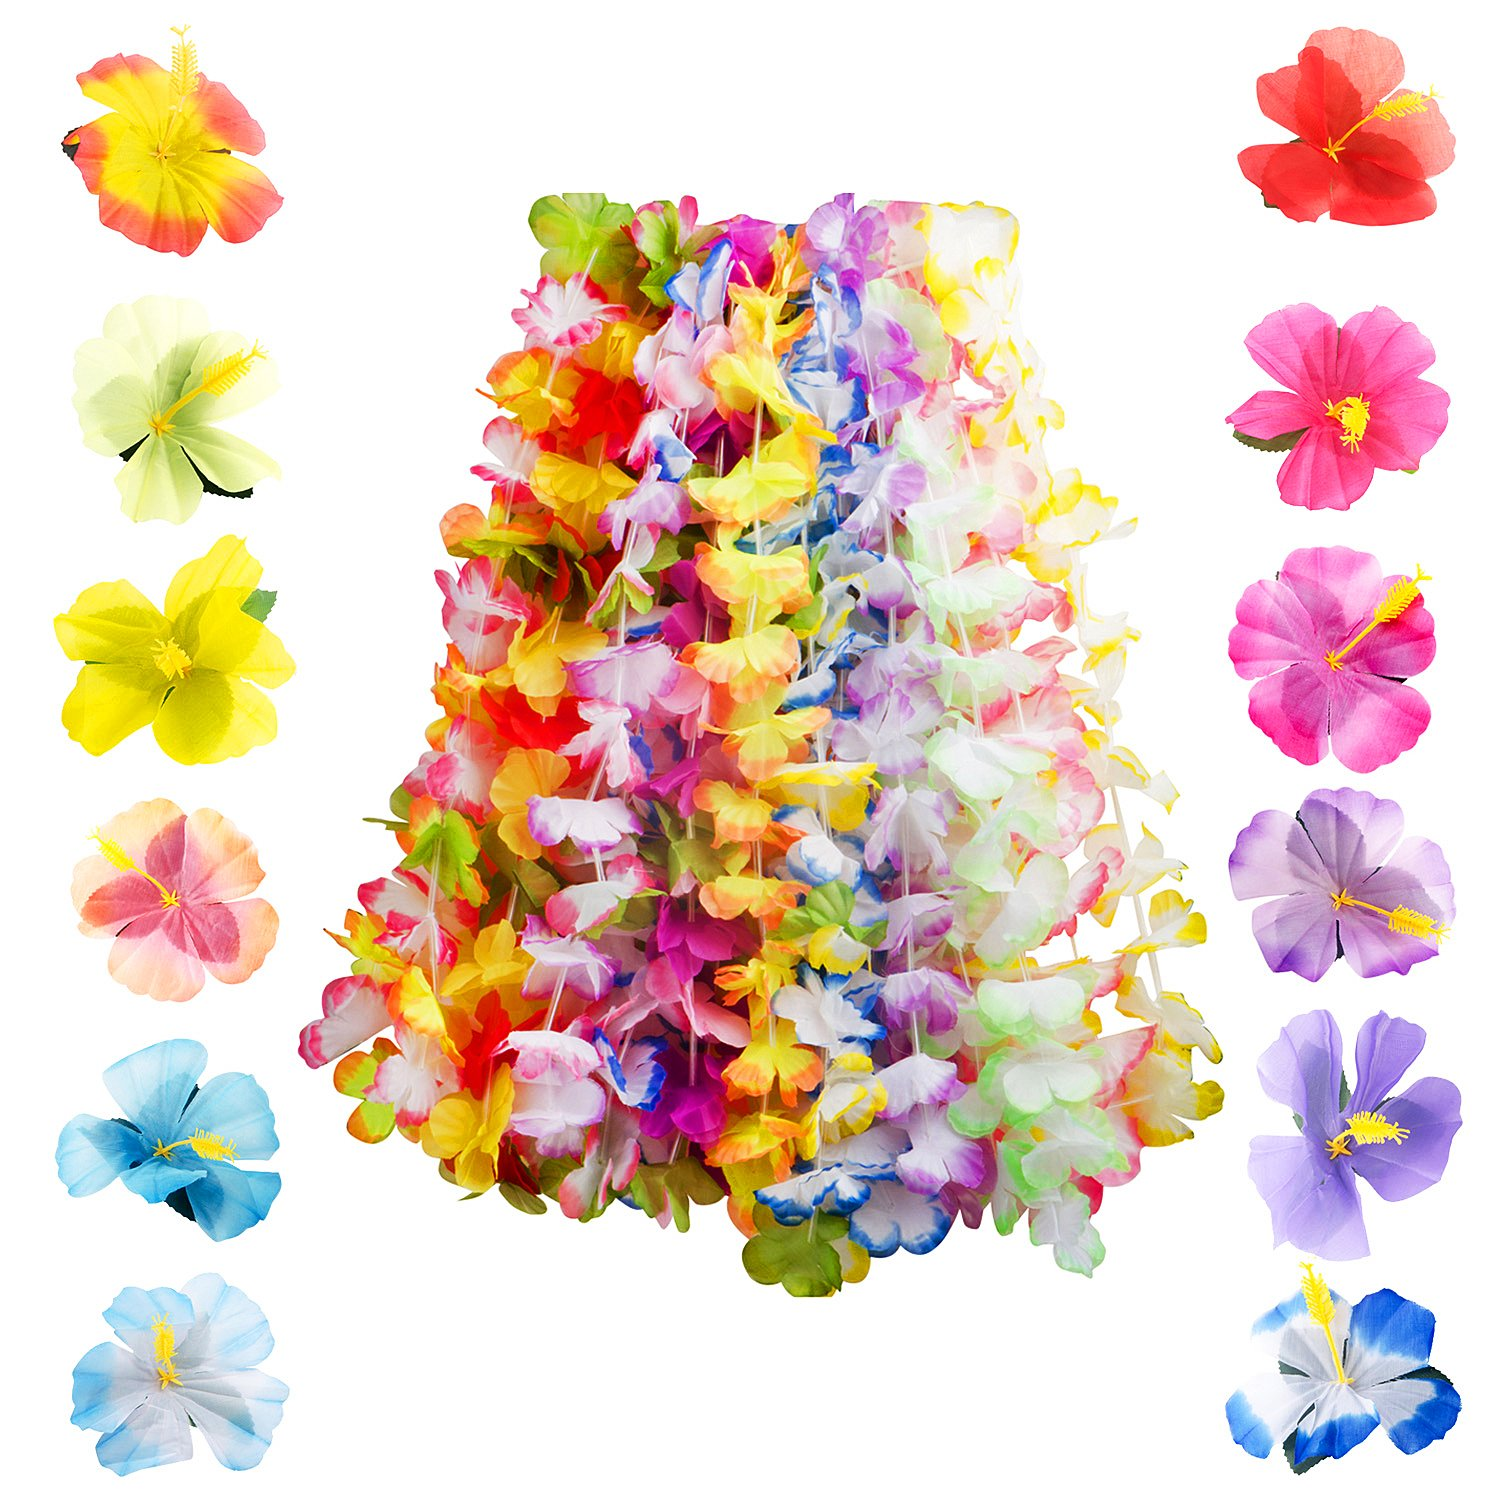 48 Counts Tropical Hawaiian Luau Flower Set - 36 Counts Ruffled Flower Lei Garlands & 12 Counts Hibiscus Flowers Tabletop Decoration - for Beach Themed Parties, Luaus, Tiki Bar Decor